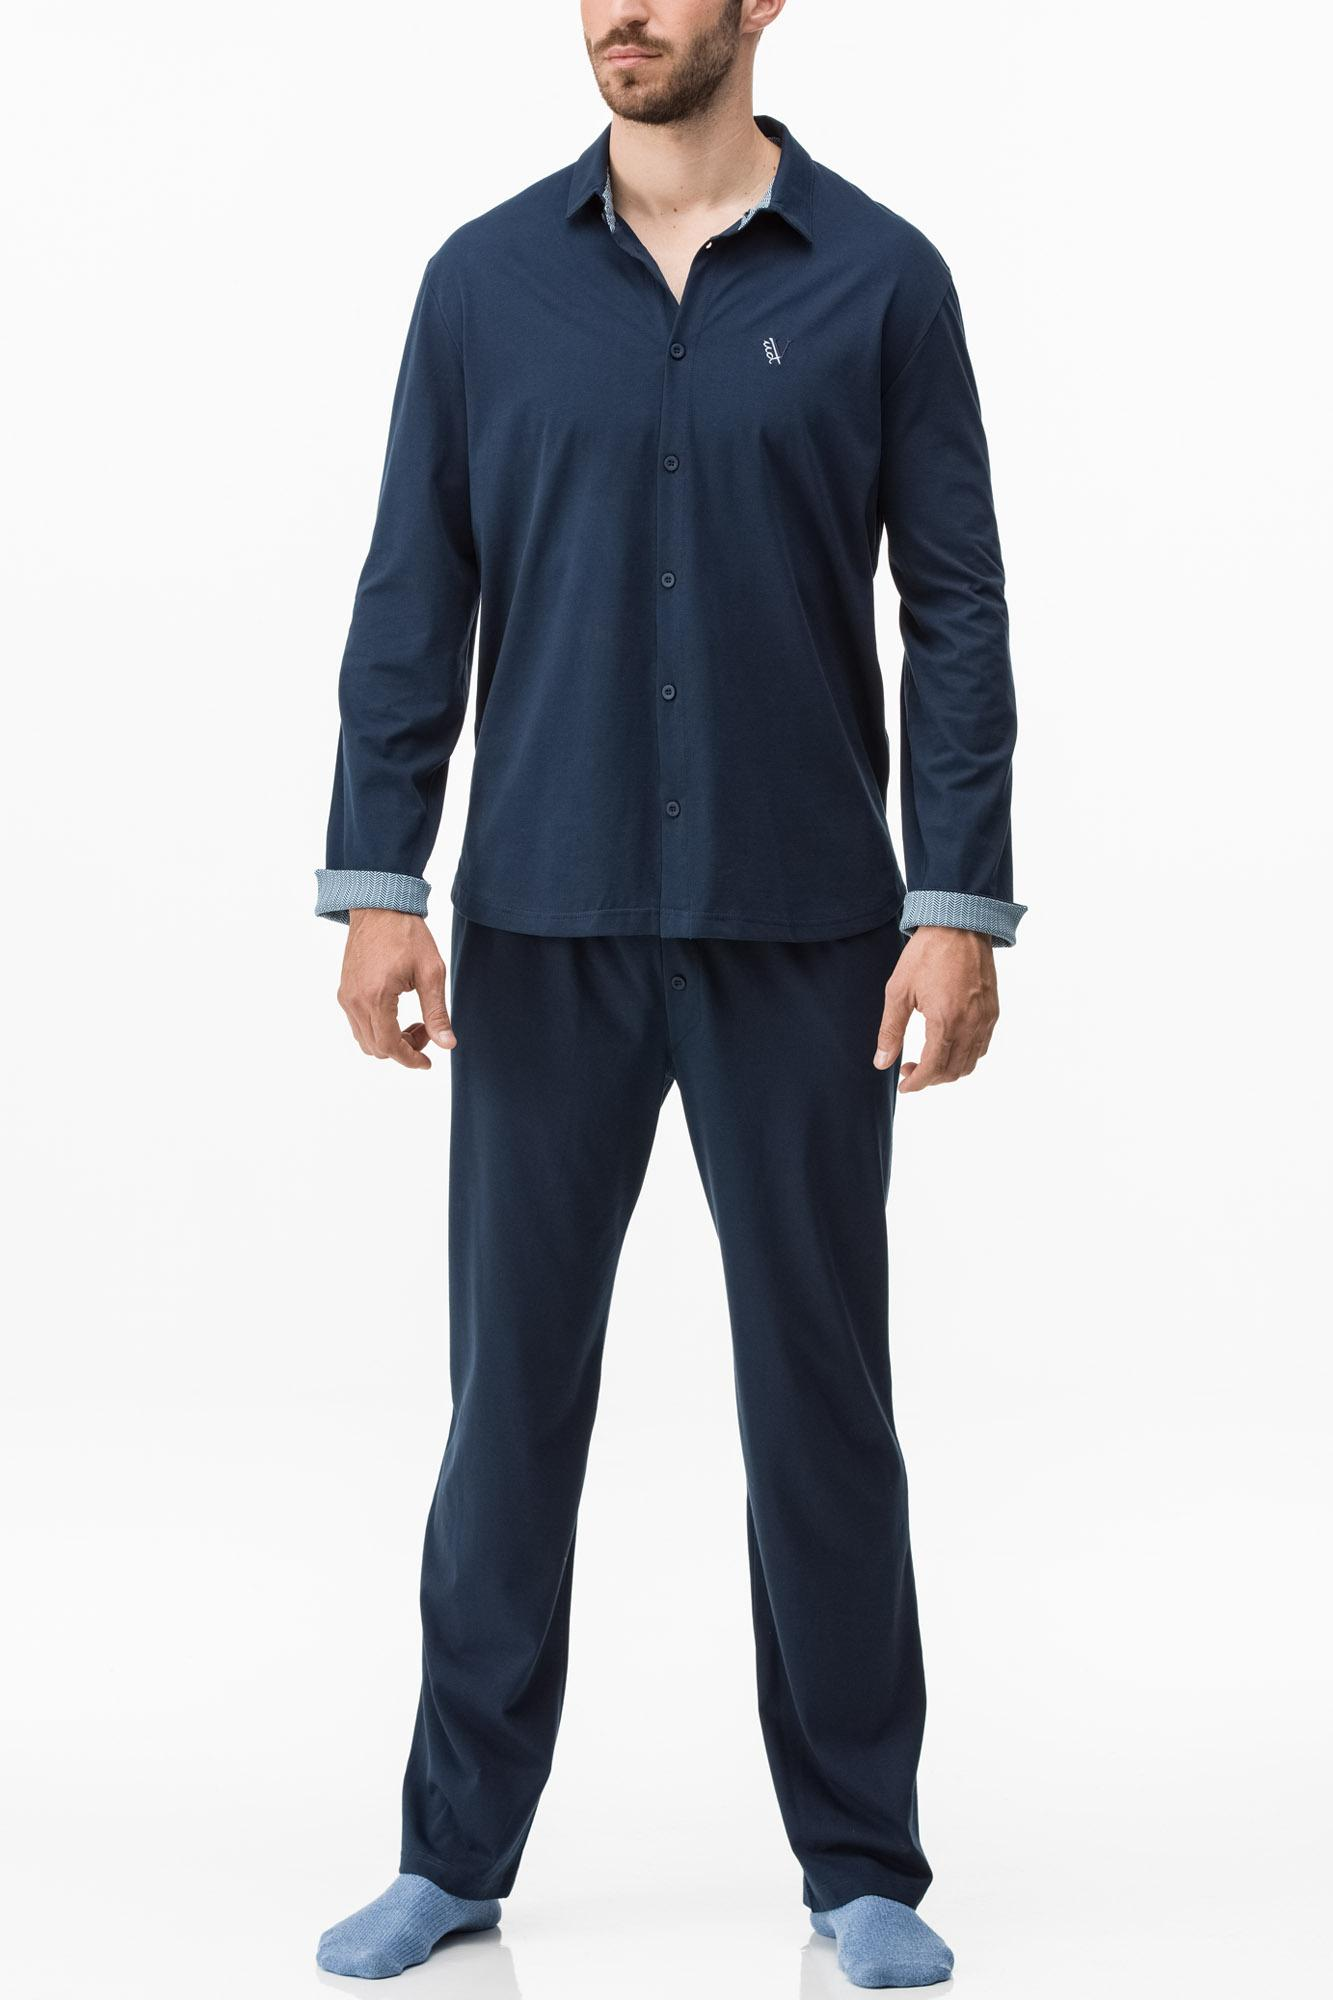 Men's Plain Buttoned Pyjamas Plus Sizes